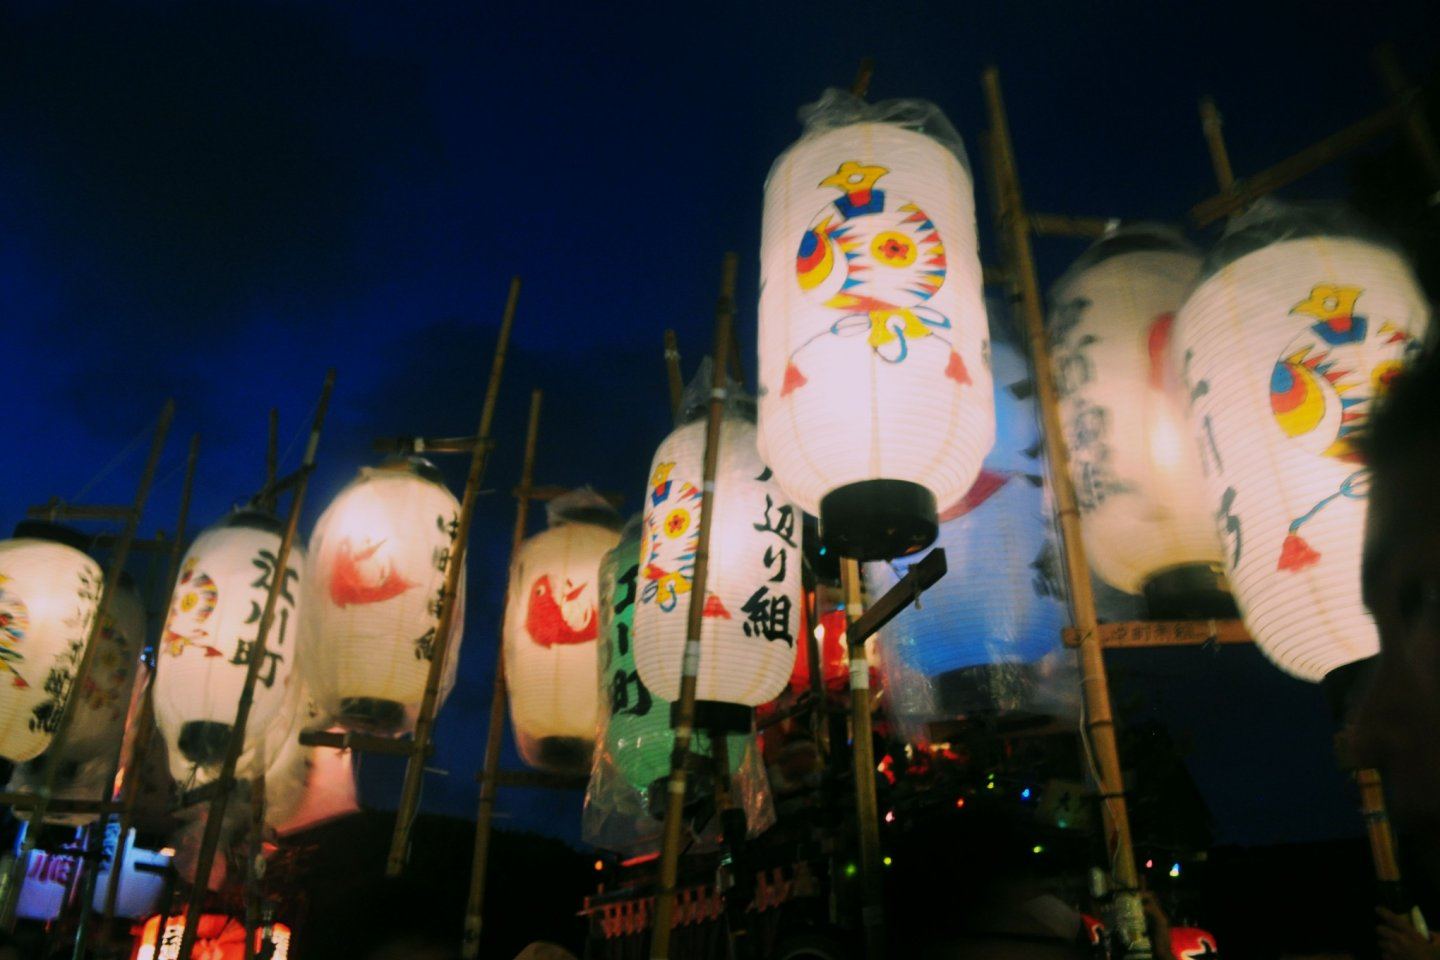 During both nights the Tokei Jinja shrine area becomes extremely crowded and lively.